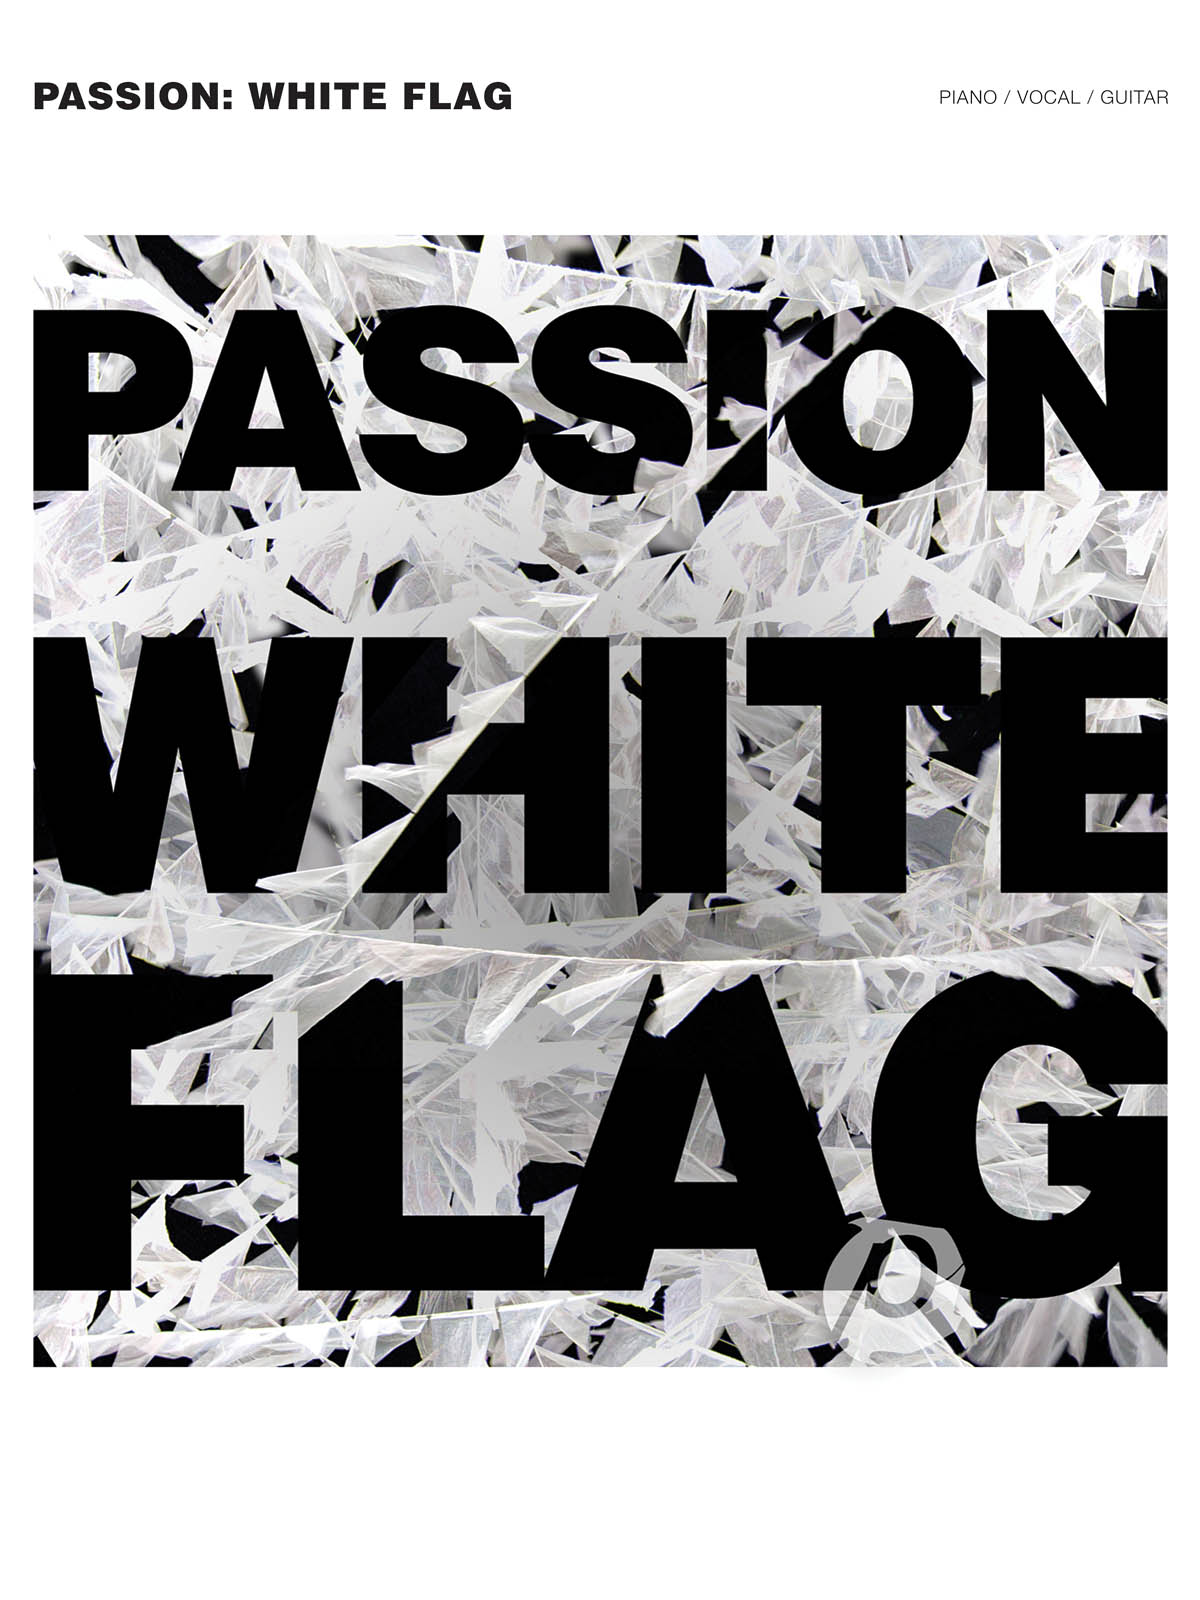 Passion: Passion: White Flag: Piano  Vocal and Guitar: Album Songbook